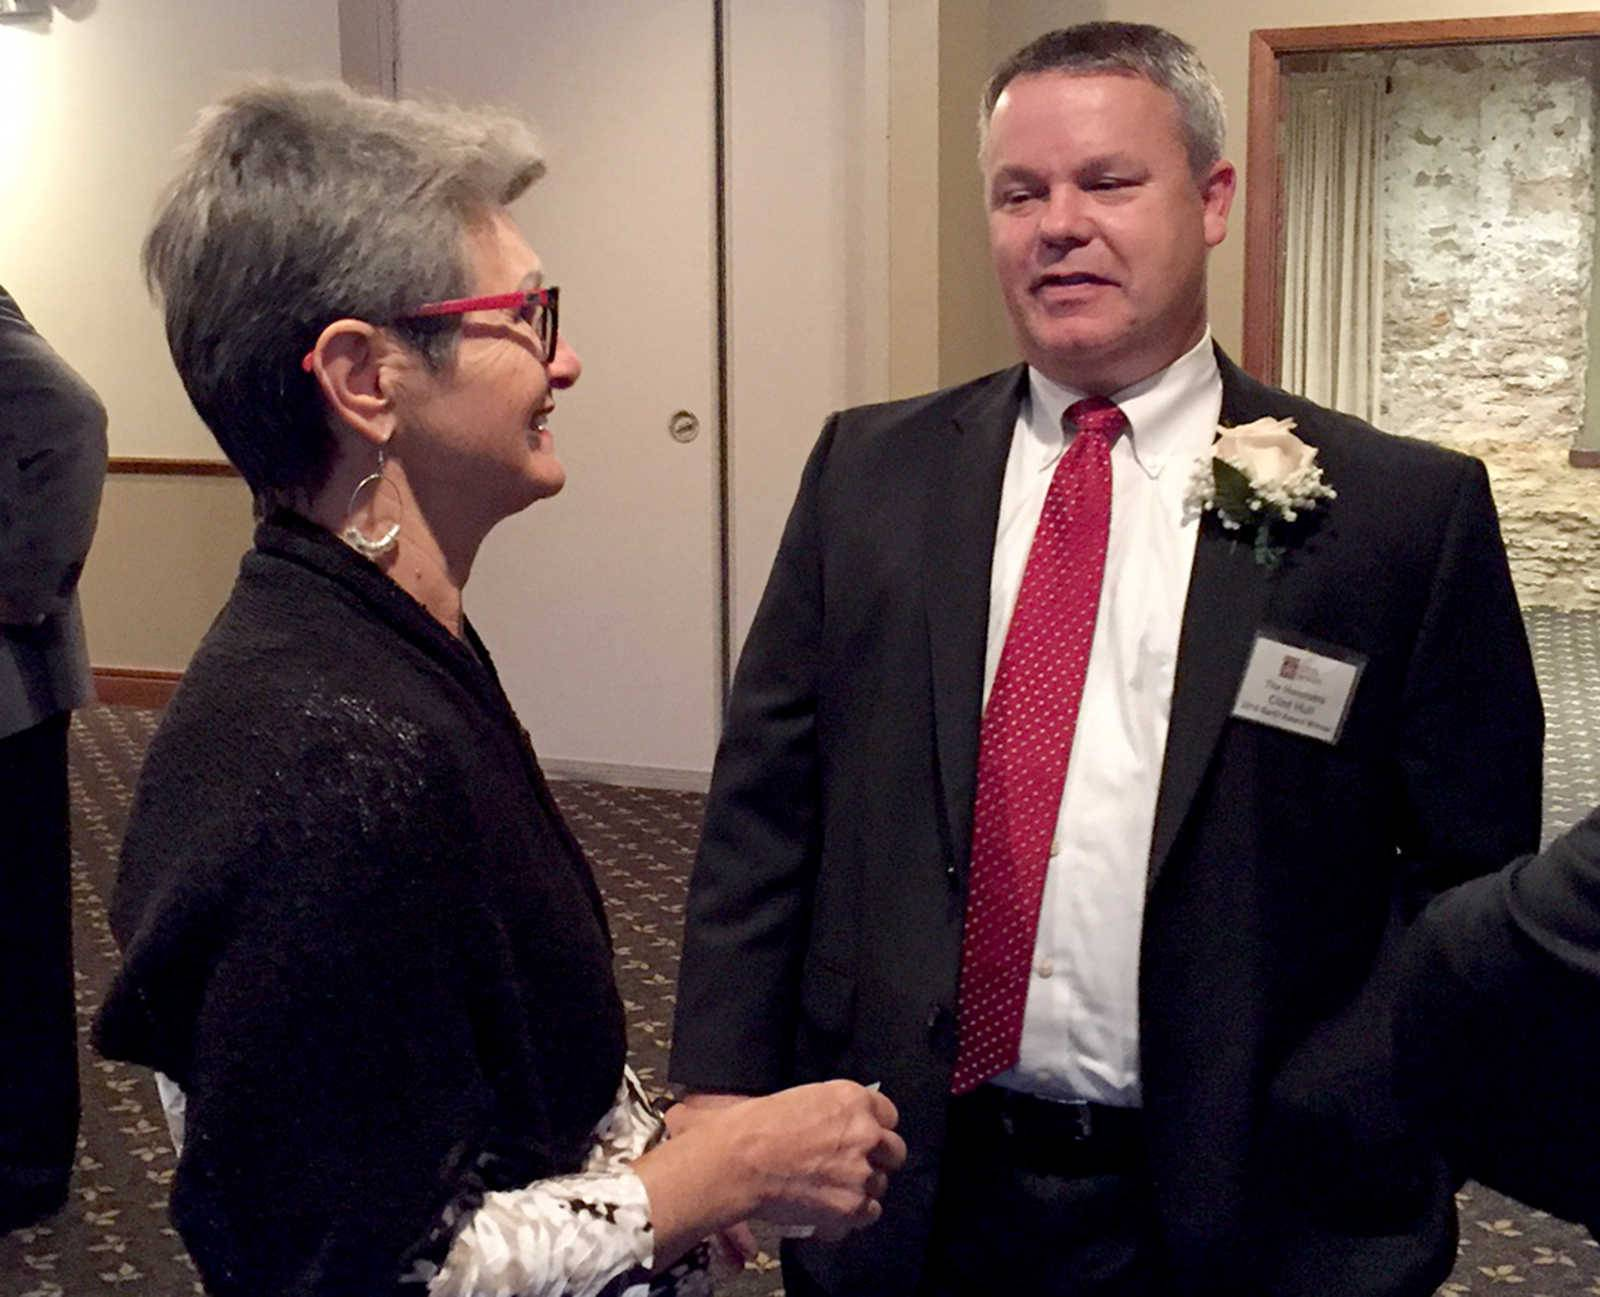 The 2016 Barth Award winner, the Honorable Clint Hull, chats with former winner Cris Anderson at the awards banquet. Hull recently won the Charlemagne Award as well for his service to the community.